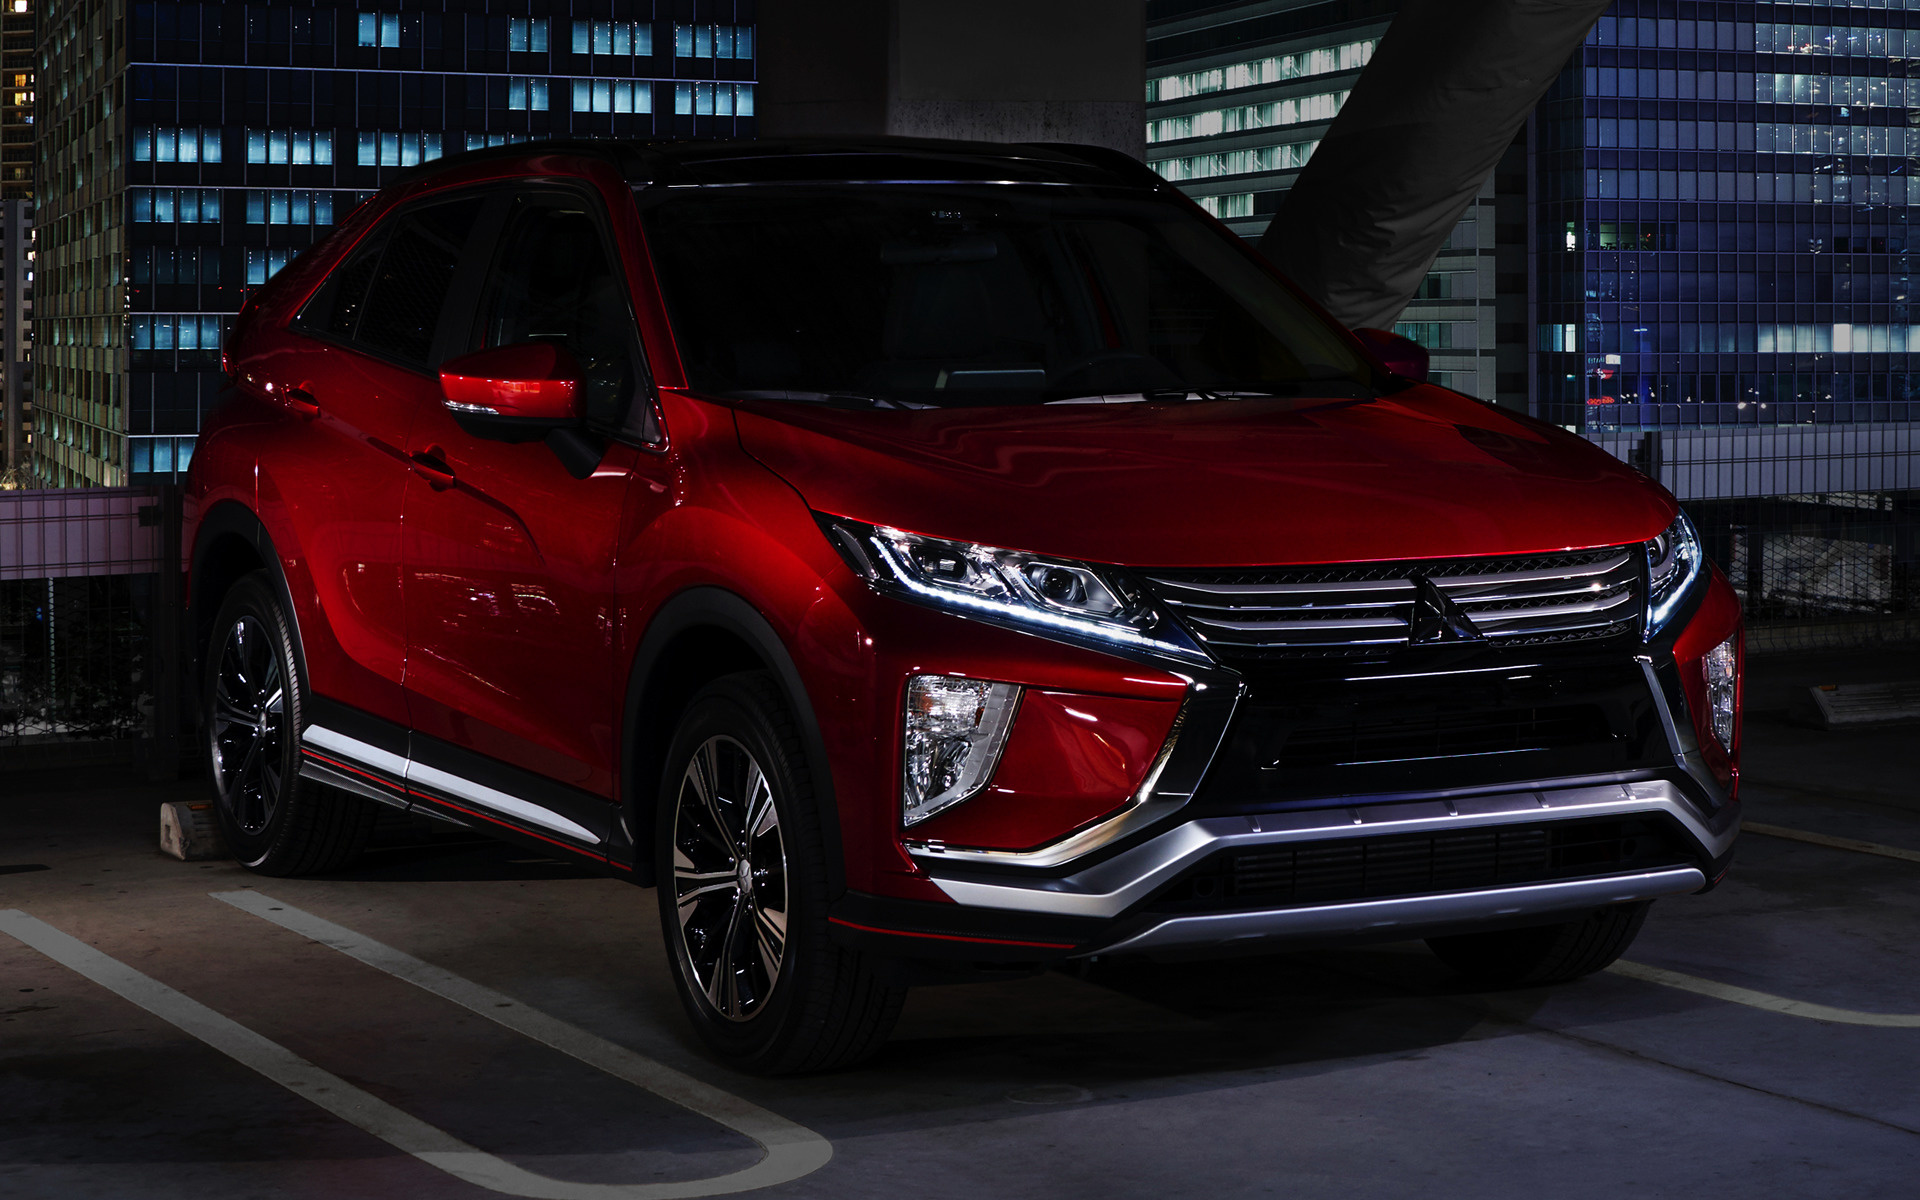 Cross Chrysler Jeep >> 2017 Mitsubishi Eclipse Cross - Wallpapers and HD Images ...